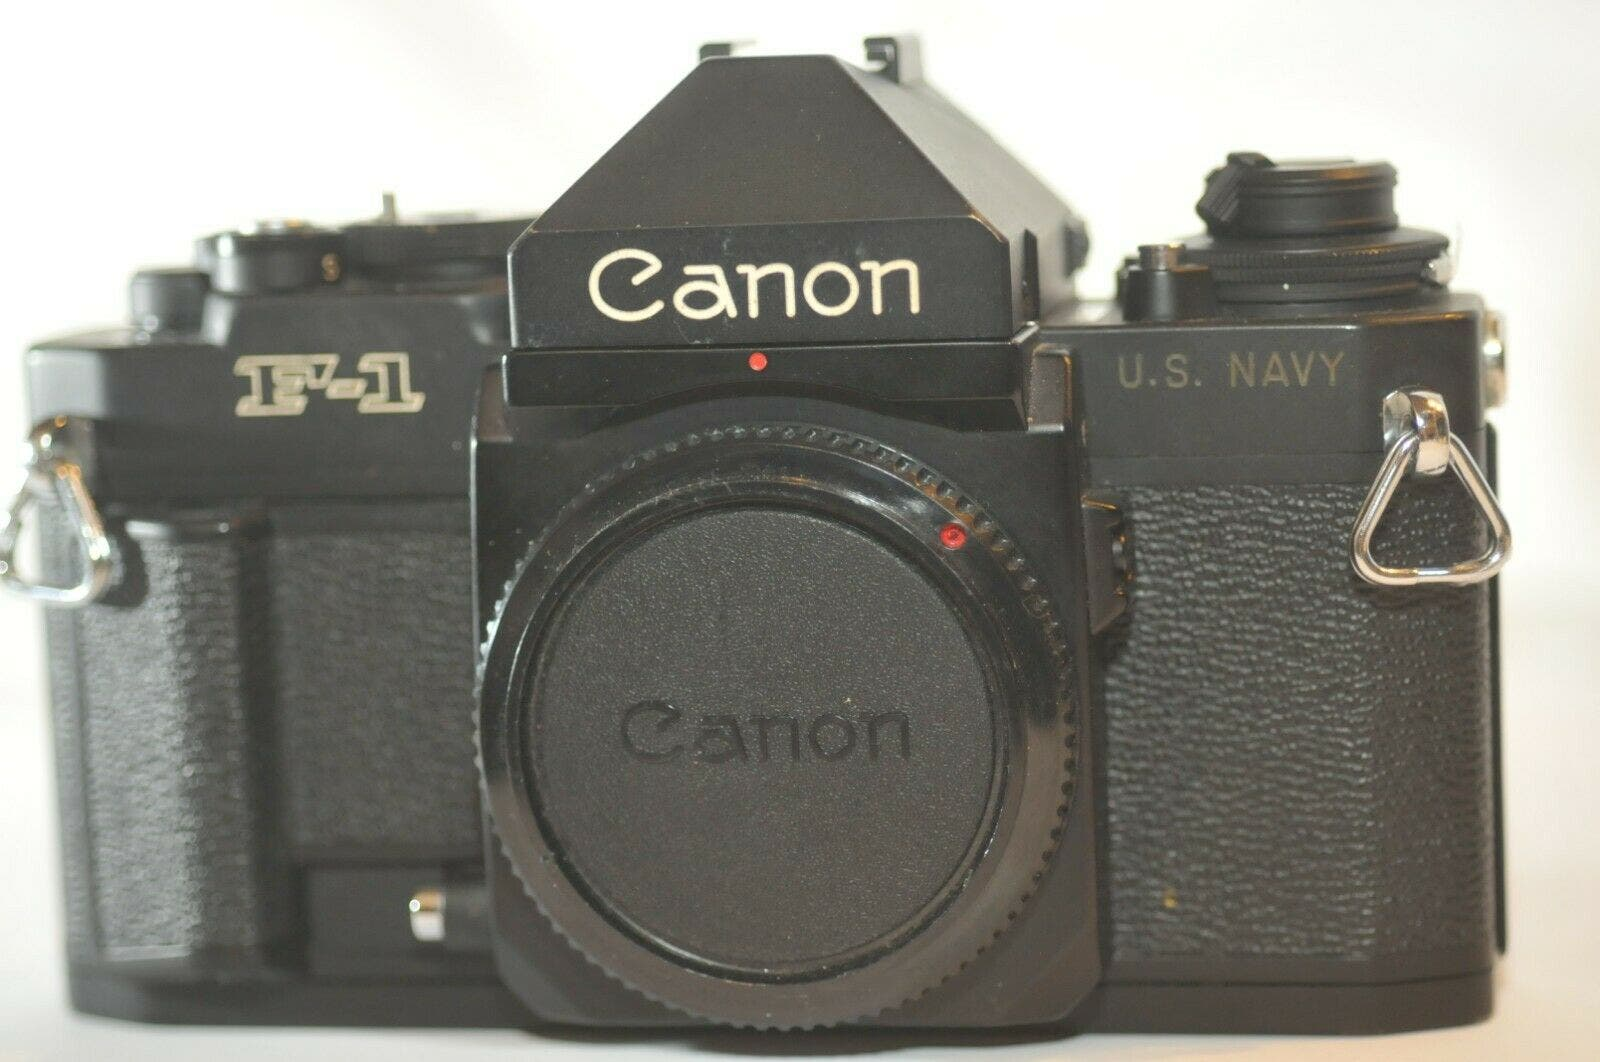 This US Navy Canon New F-1 Body Is Up for Grabs for $348